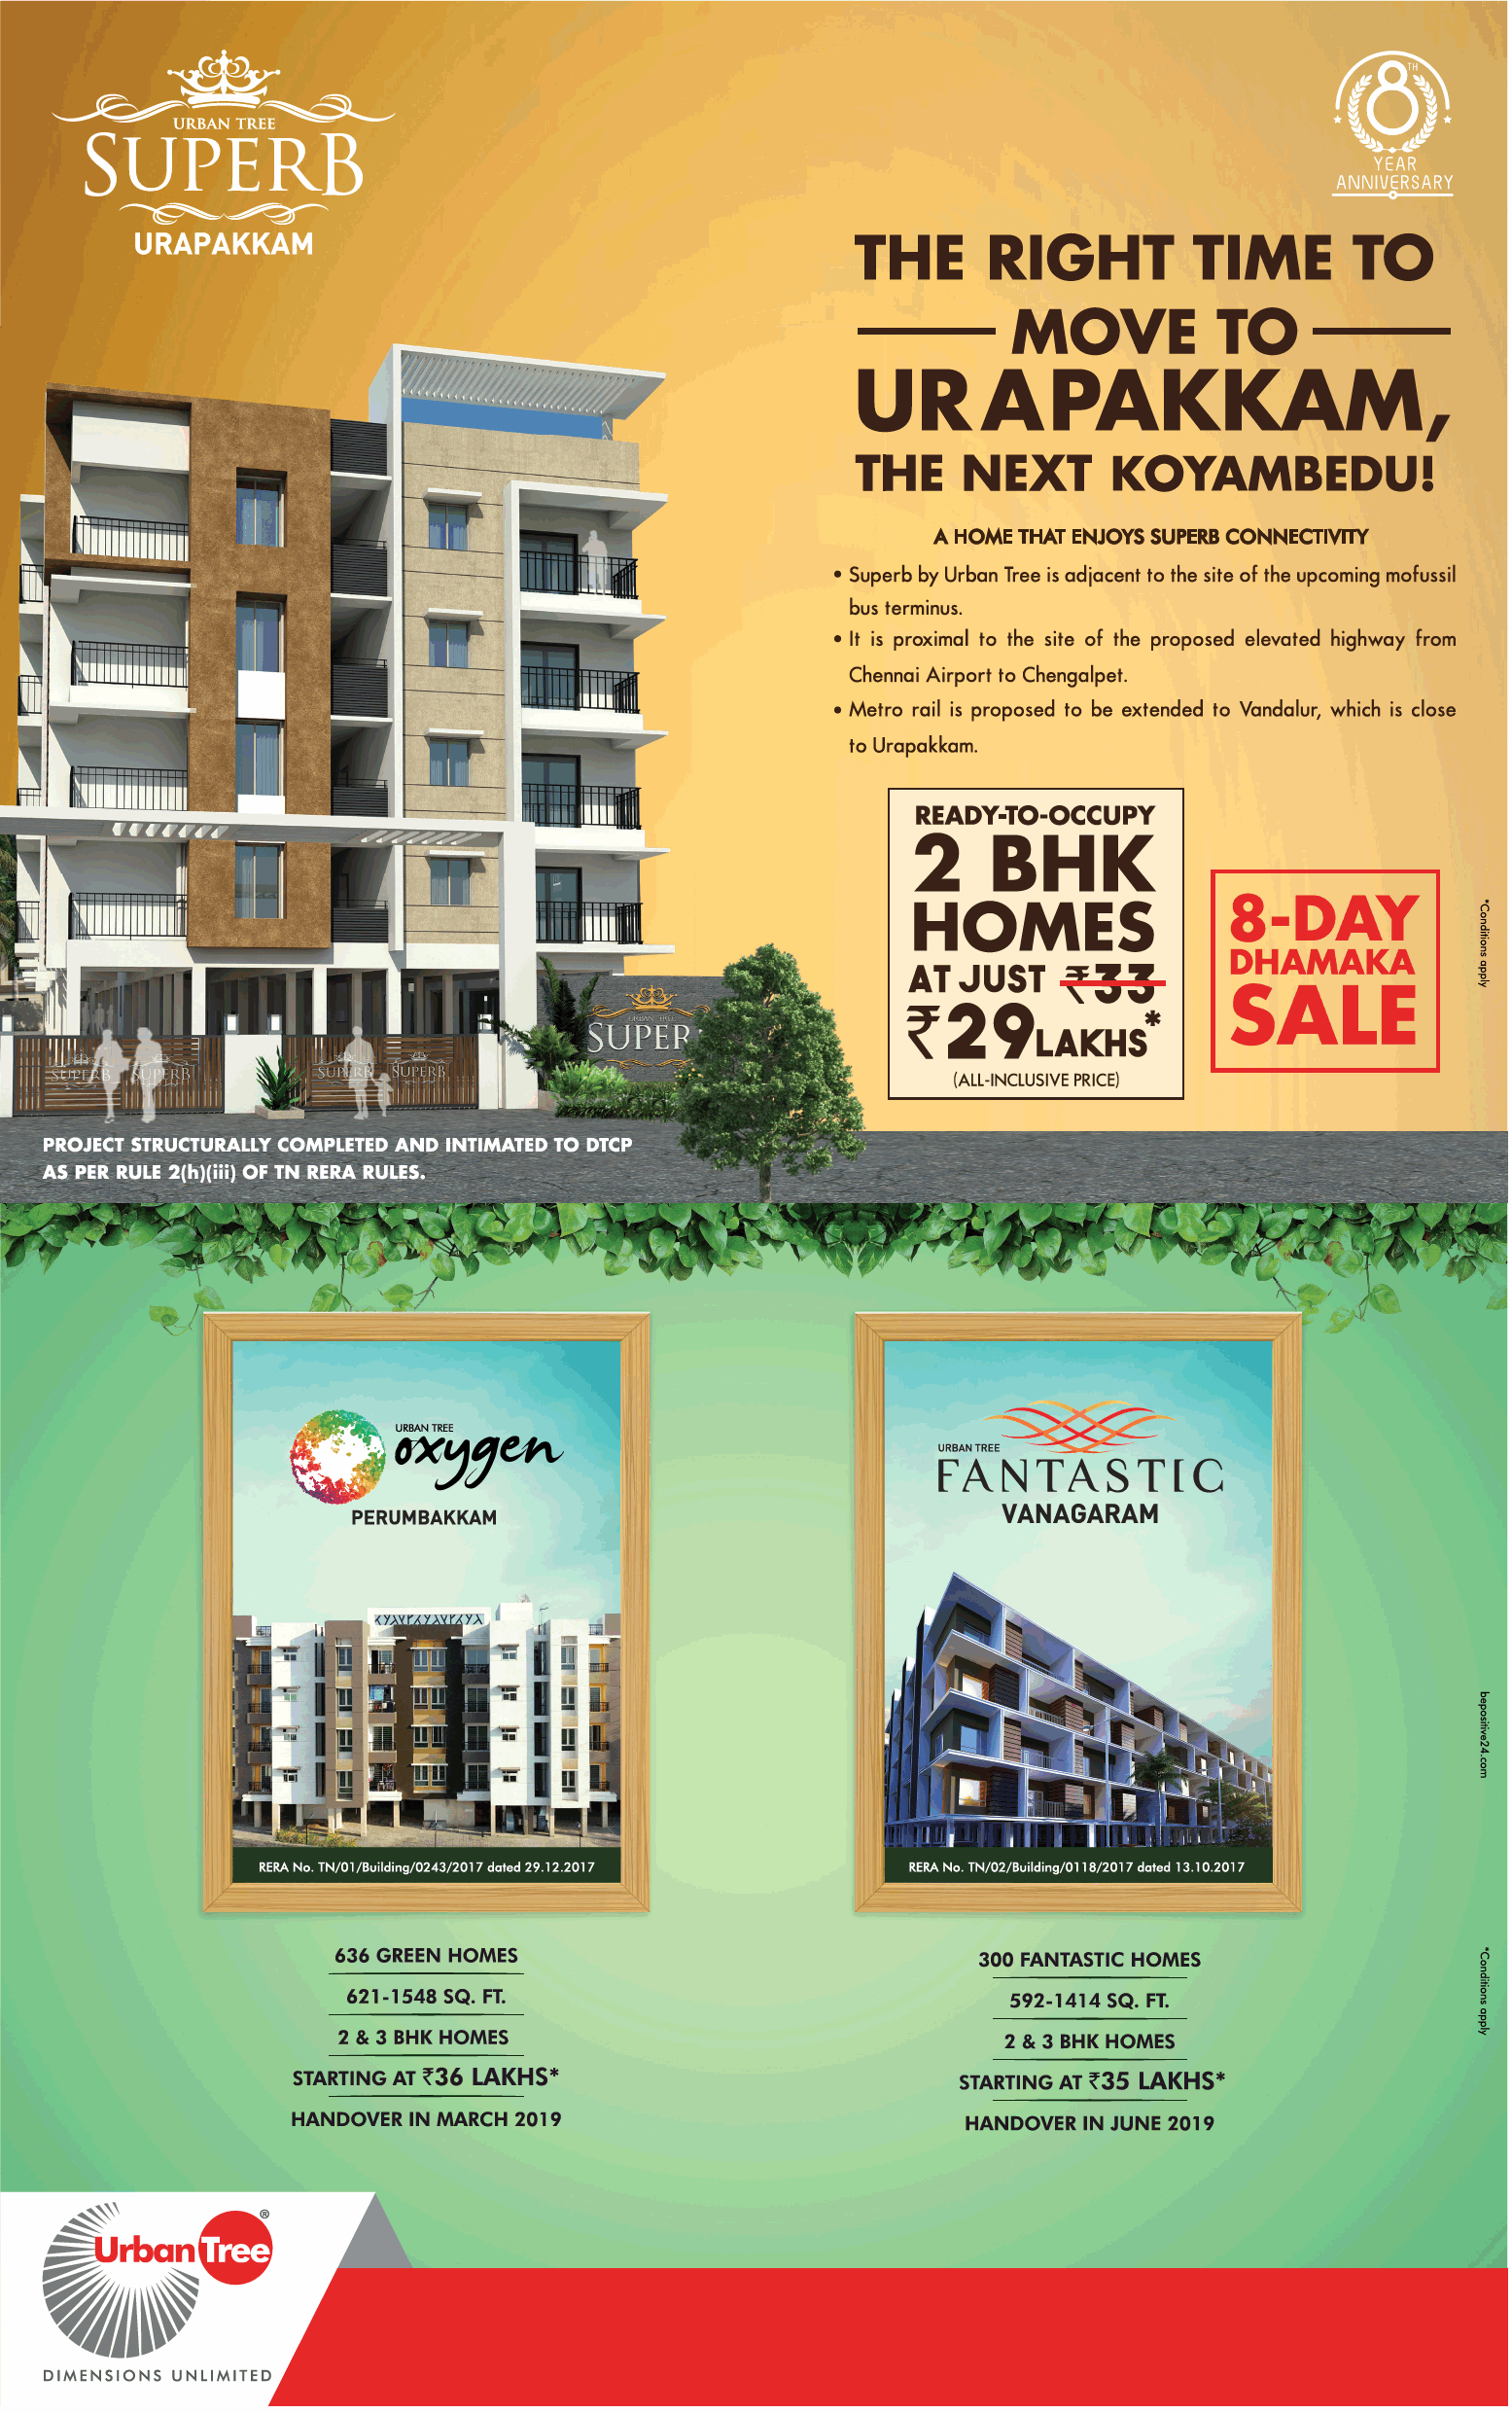 Ready to occupy 2 bhk homes at Rs 29 lakhs at Urban Tree Projects in Chennai